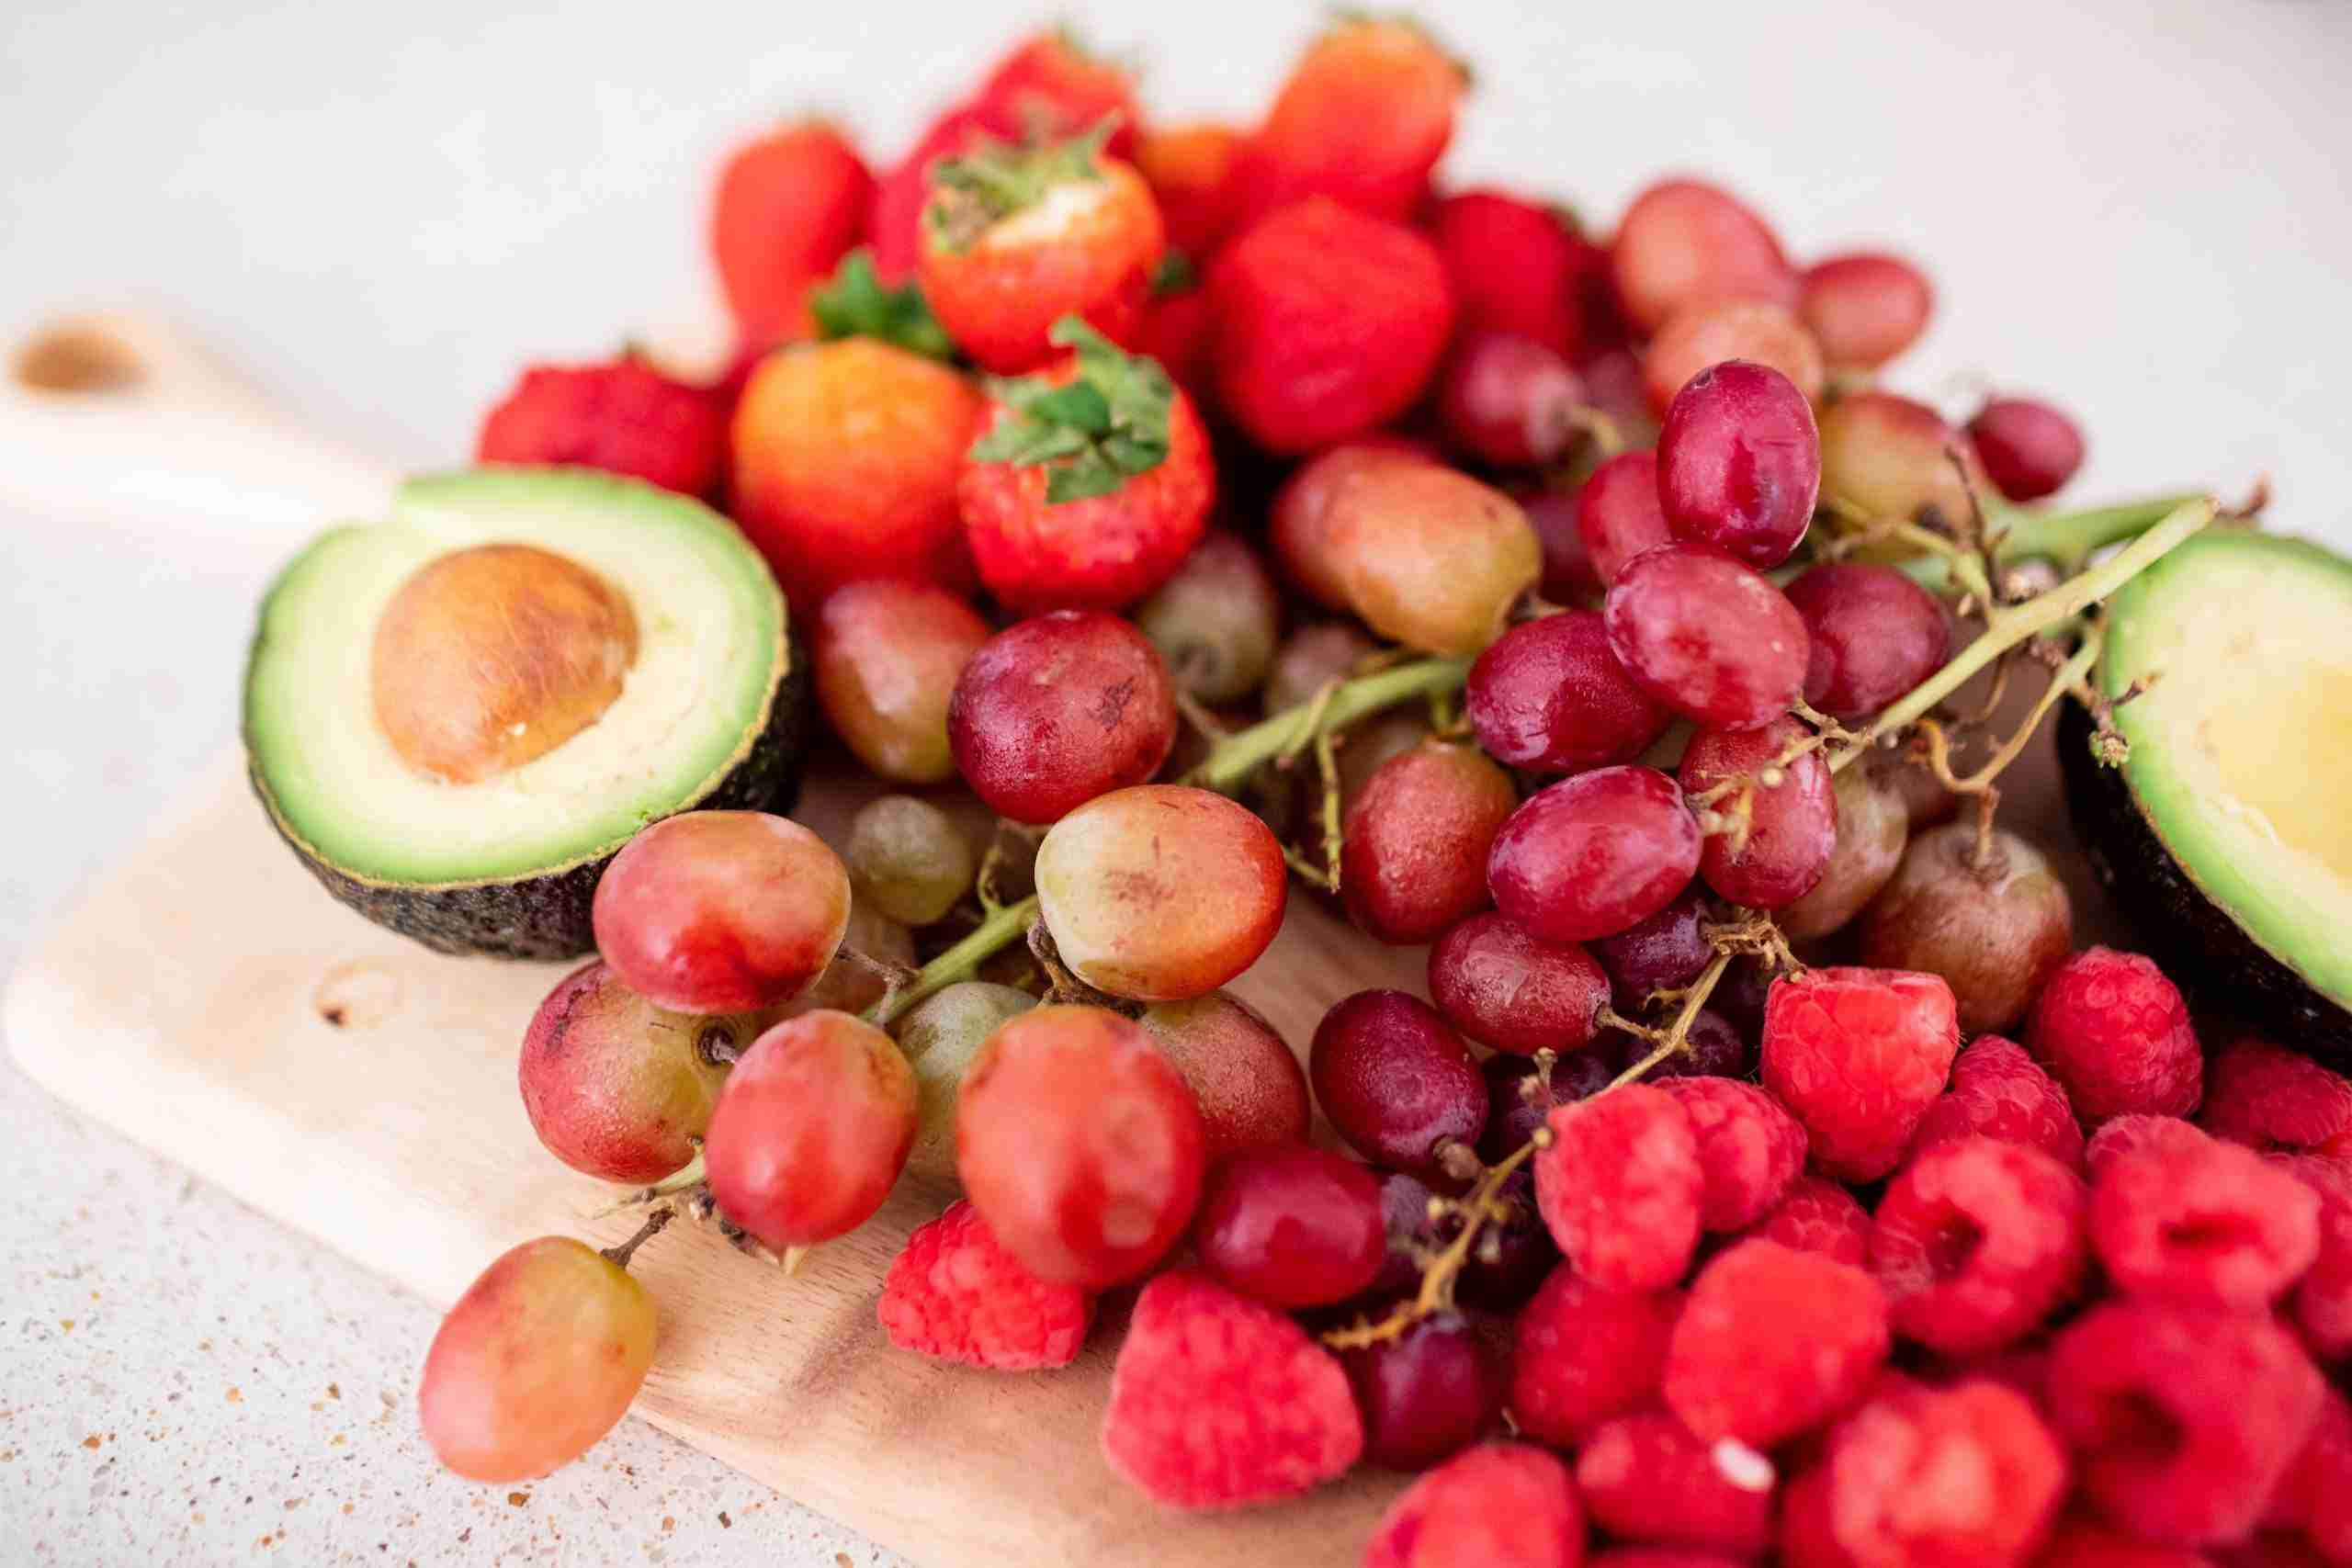 Picture of strawberries, grapes, raspberries, and avocado.